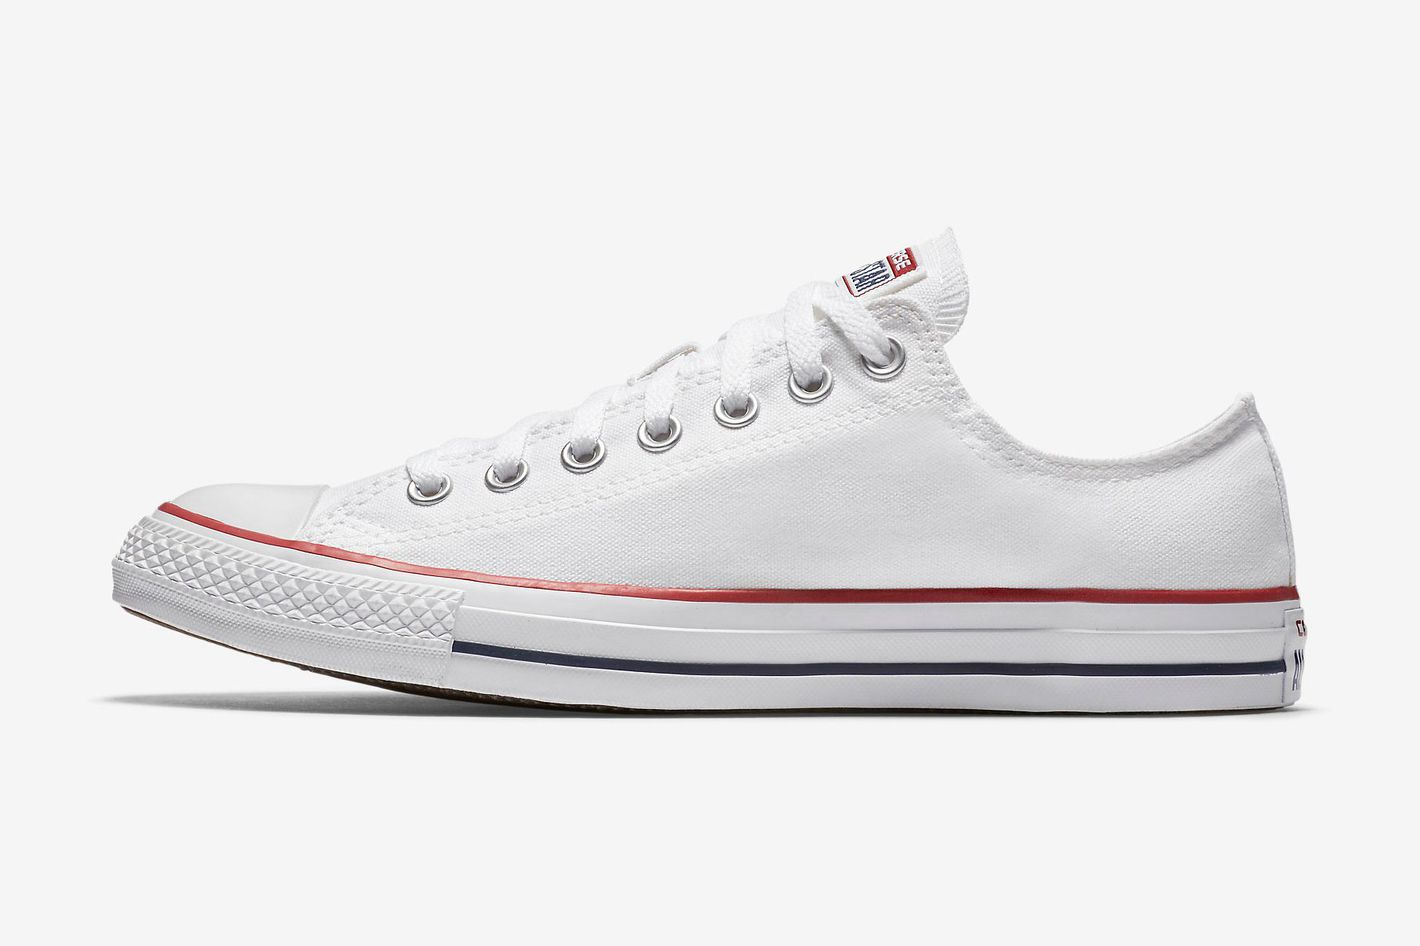 4e5a038d83bb30 Converse Chuck Taylor All Star Low Top at Nike